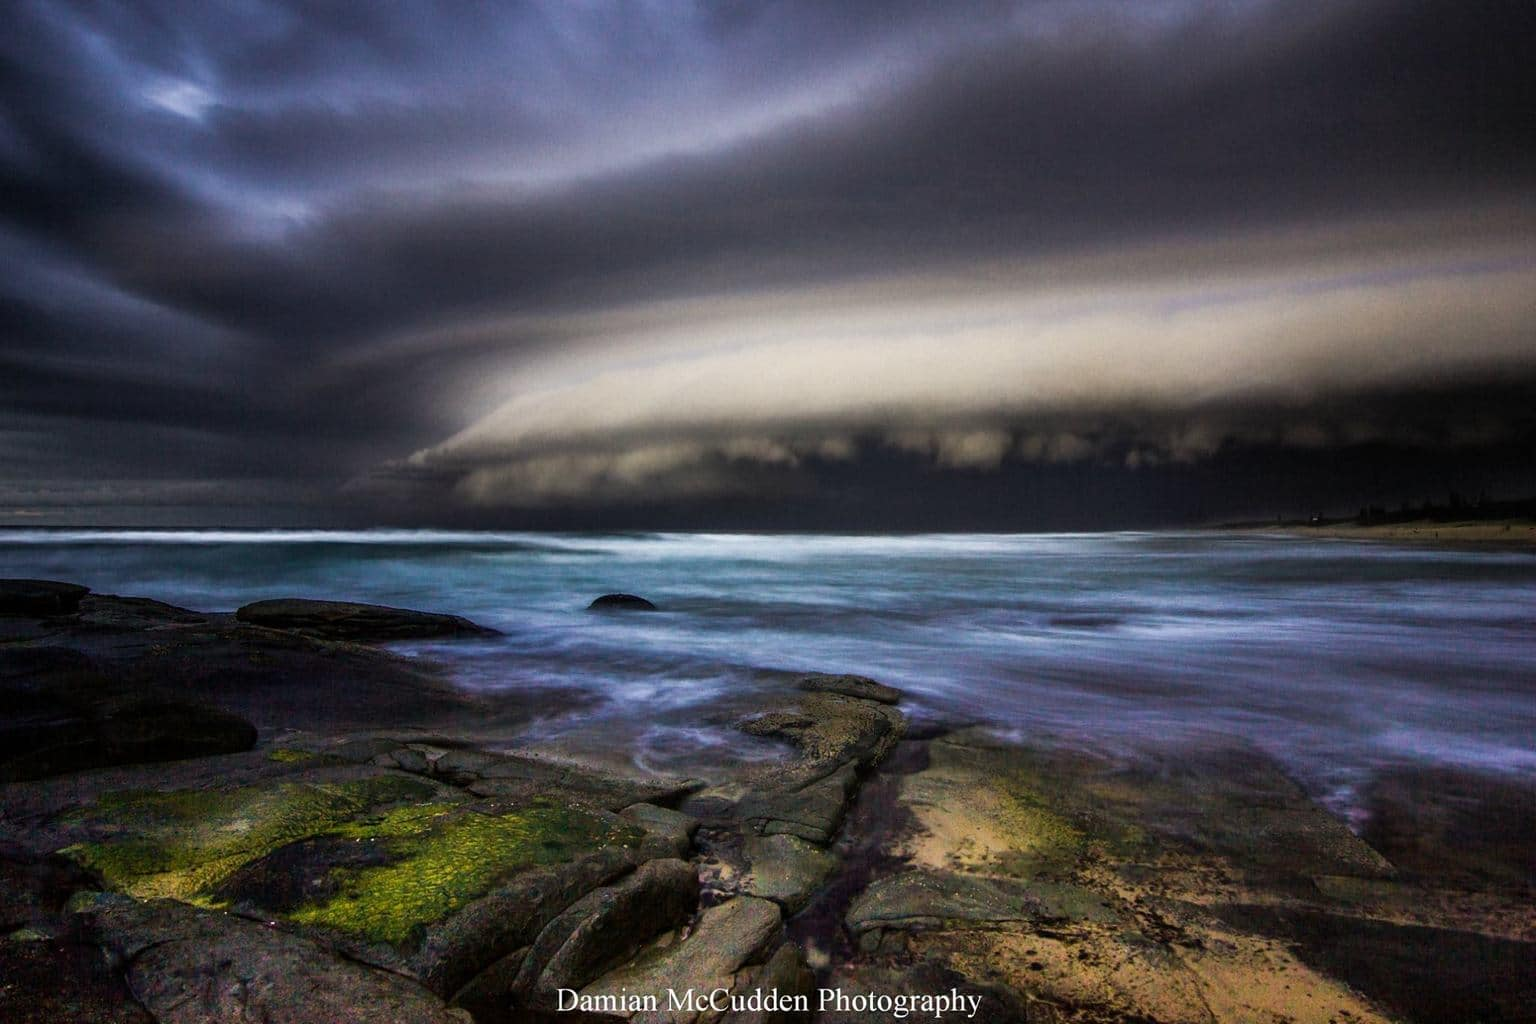 This is how Australia does it  Epic storm front on The Sunshine Coast today  Got this from Point Cartwright facing south towards Caloundra.  Iso200 | f5 | 6secs | 11mm |